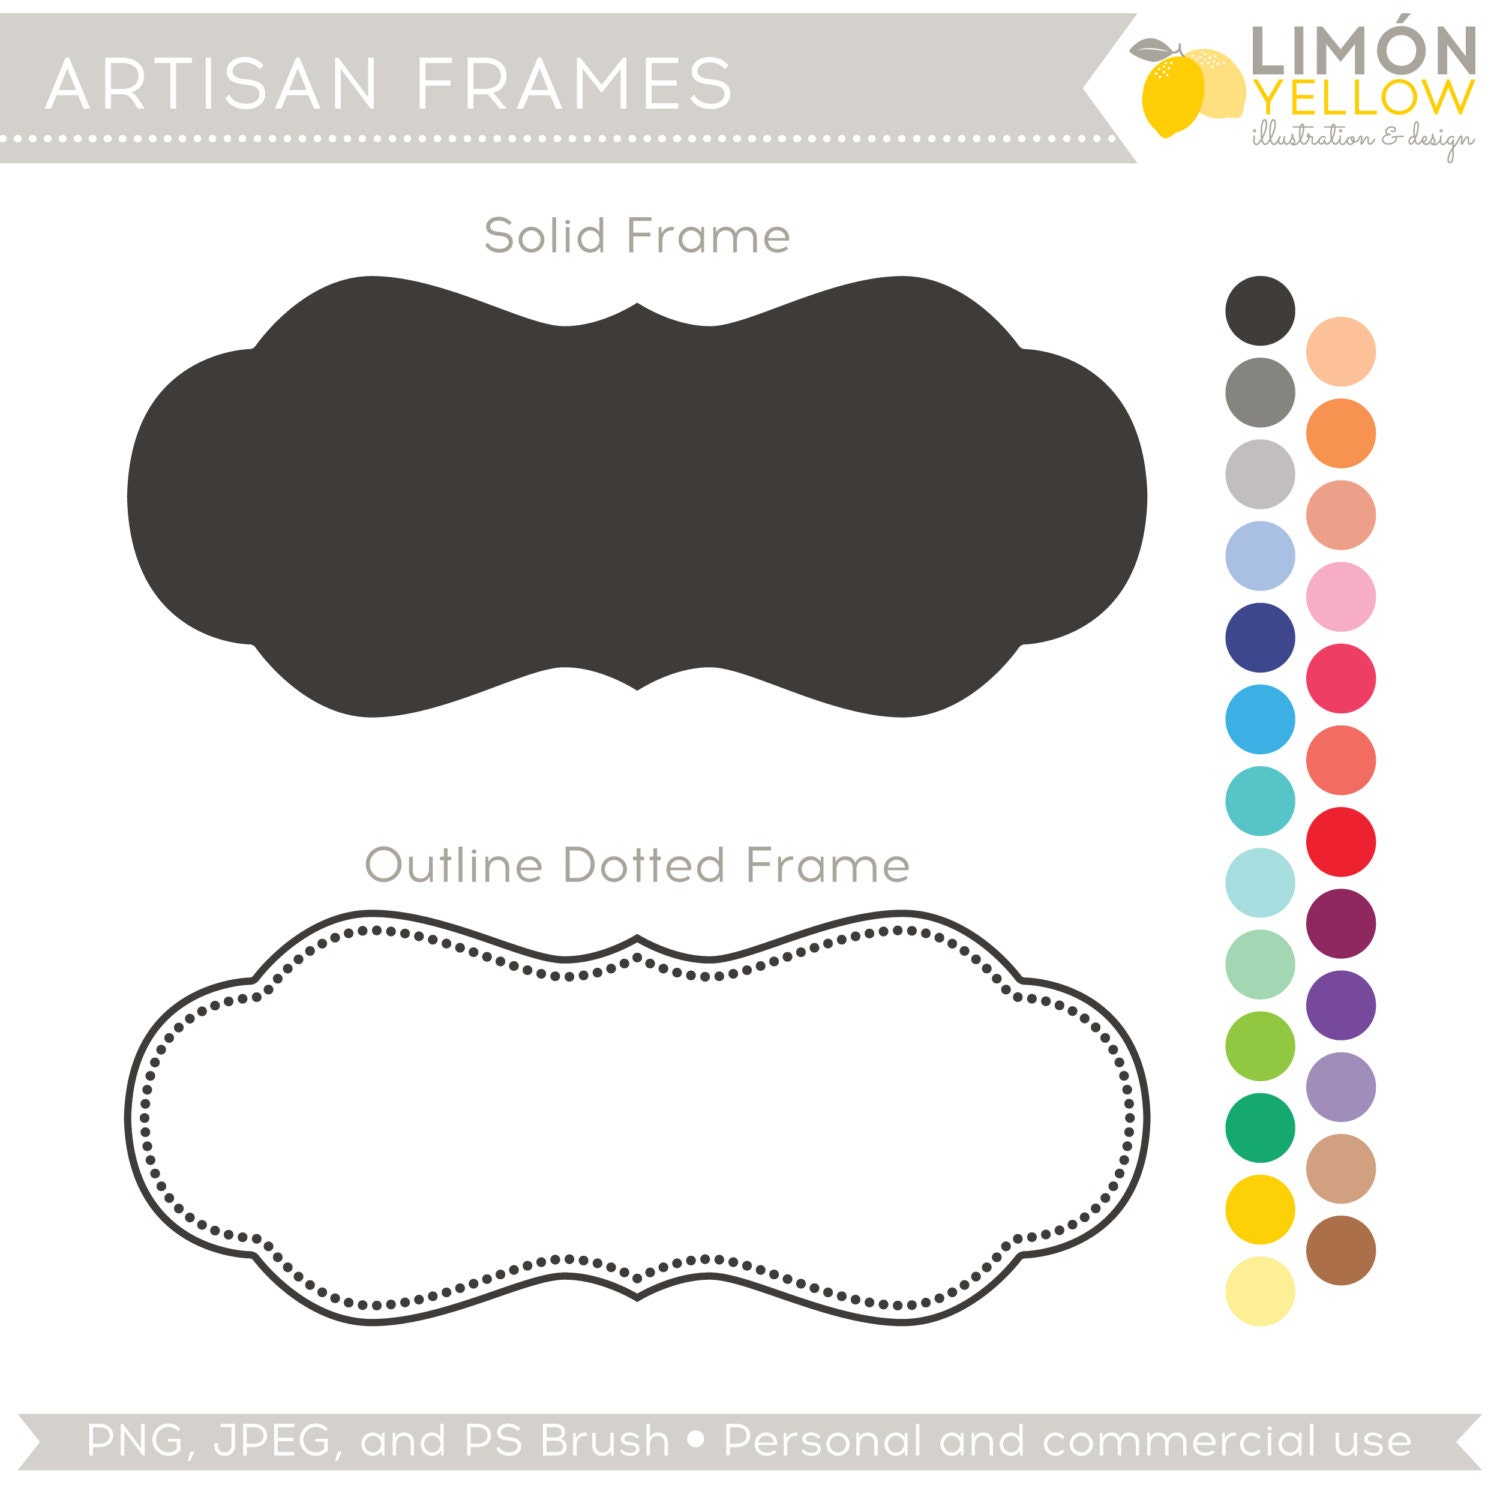 Glasses Frame Outline : Items similar to Colorful Solid and Outline Frames Clip ...